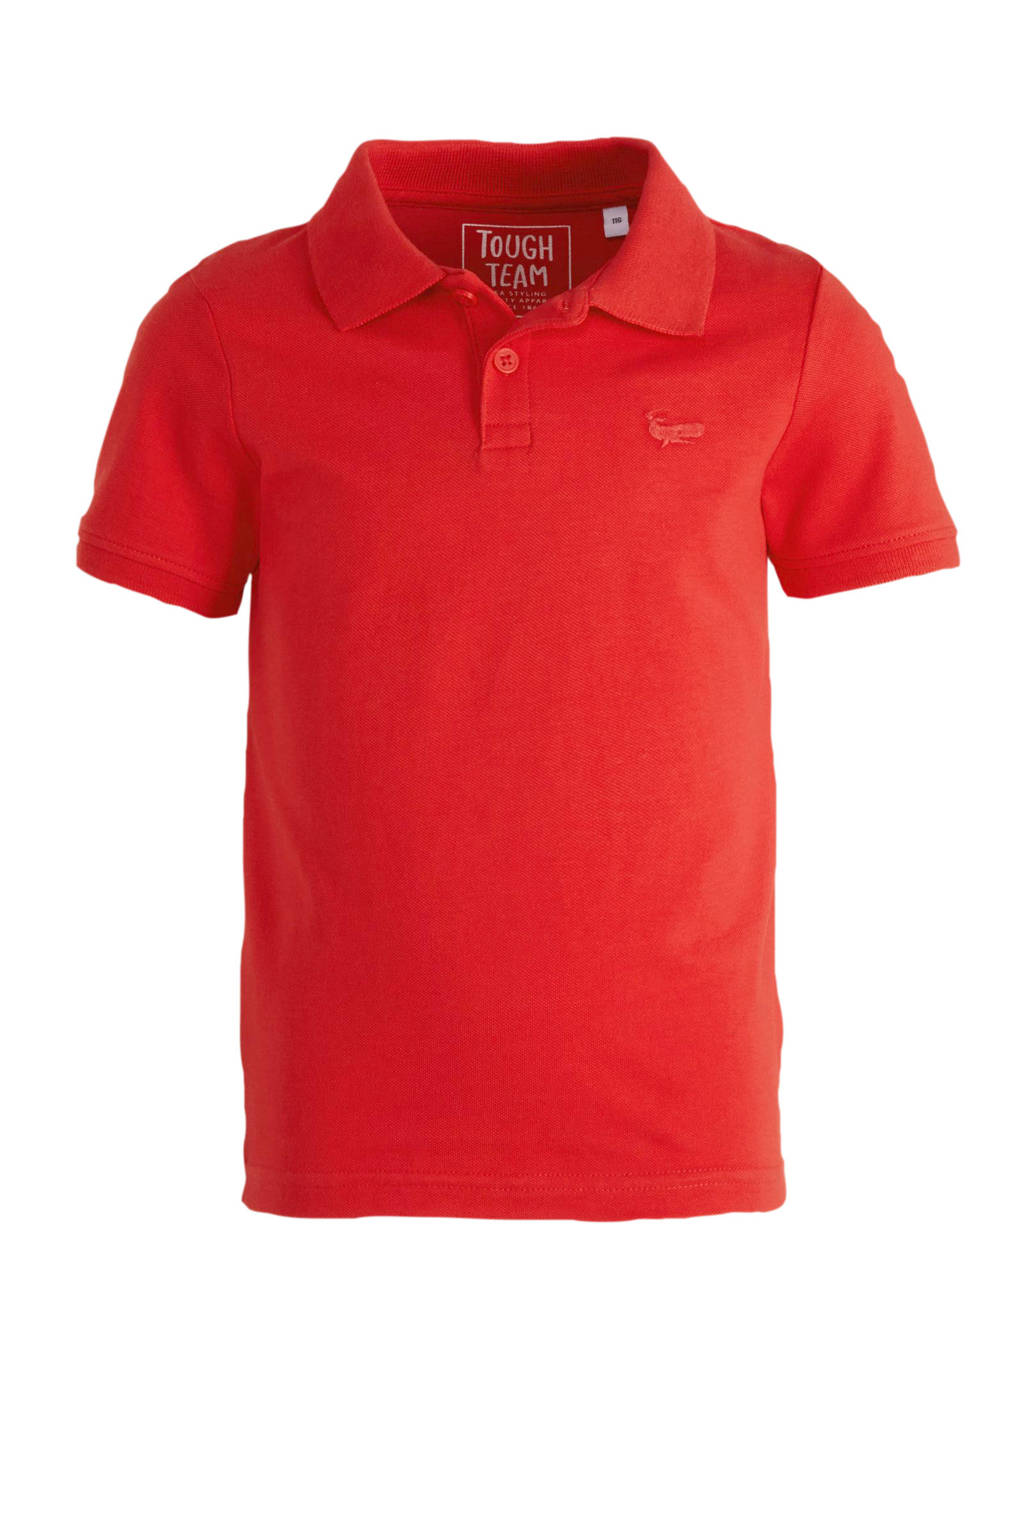 C&A Palomino polo met borduursels rood, Rood